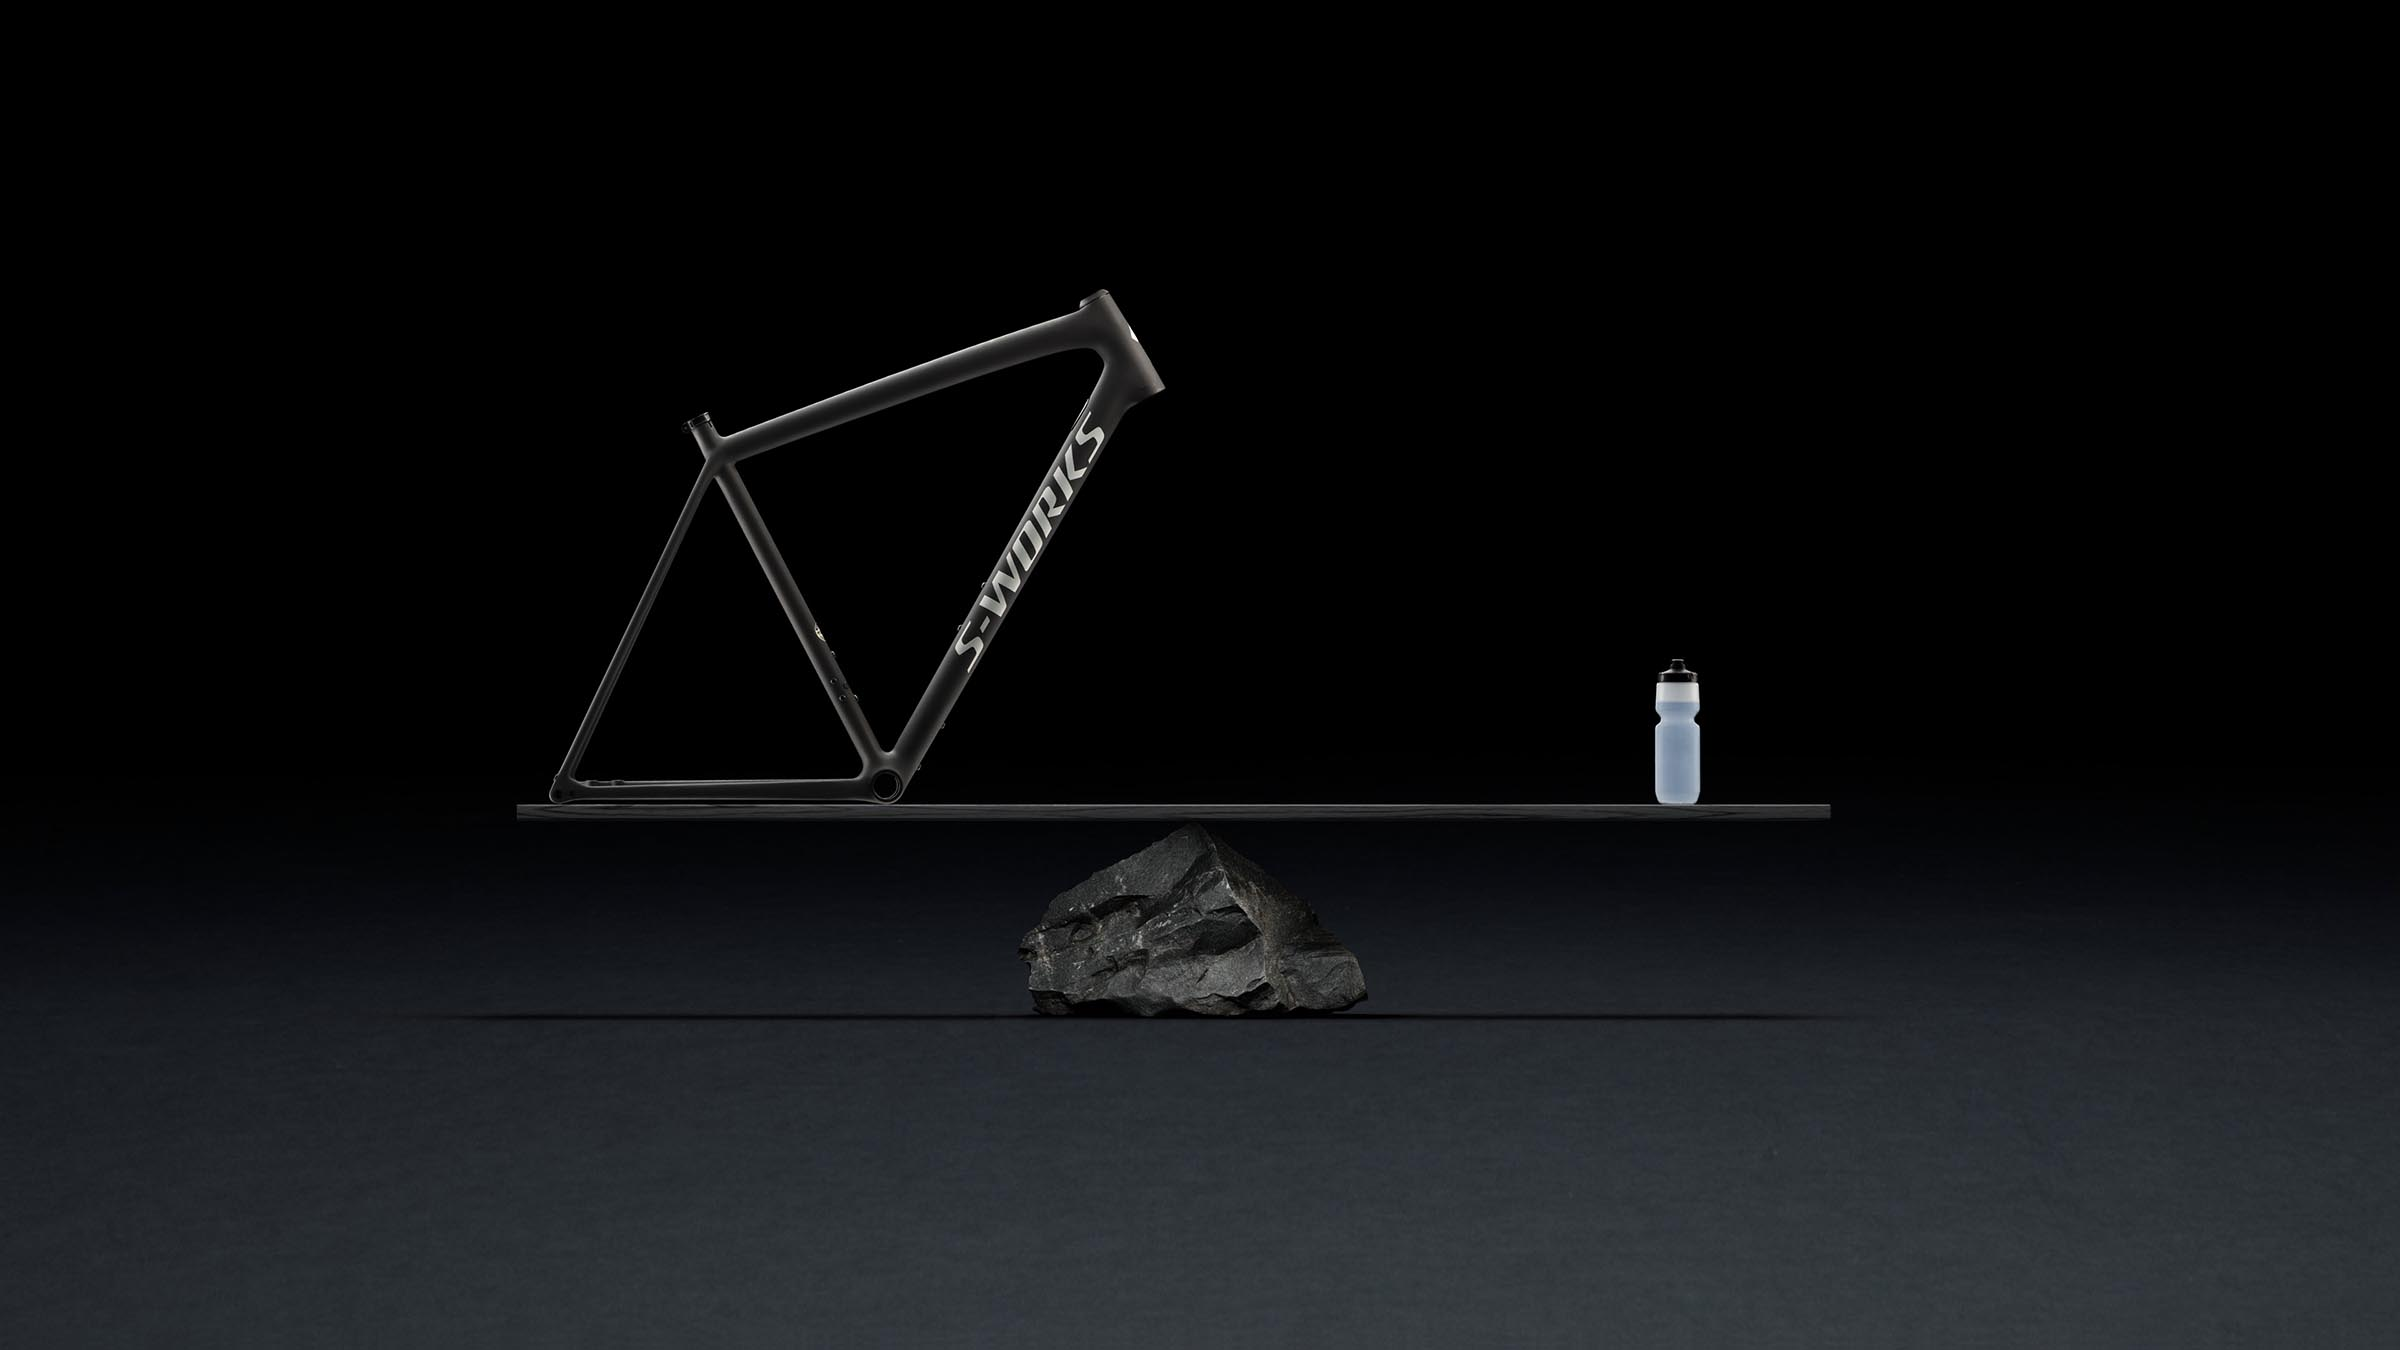 a frame that weighs less than a full bottle in your cage